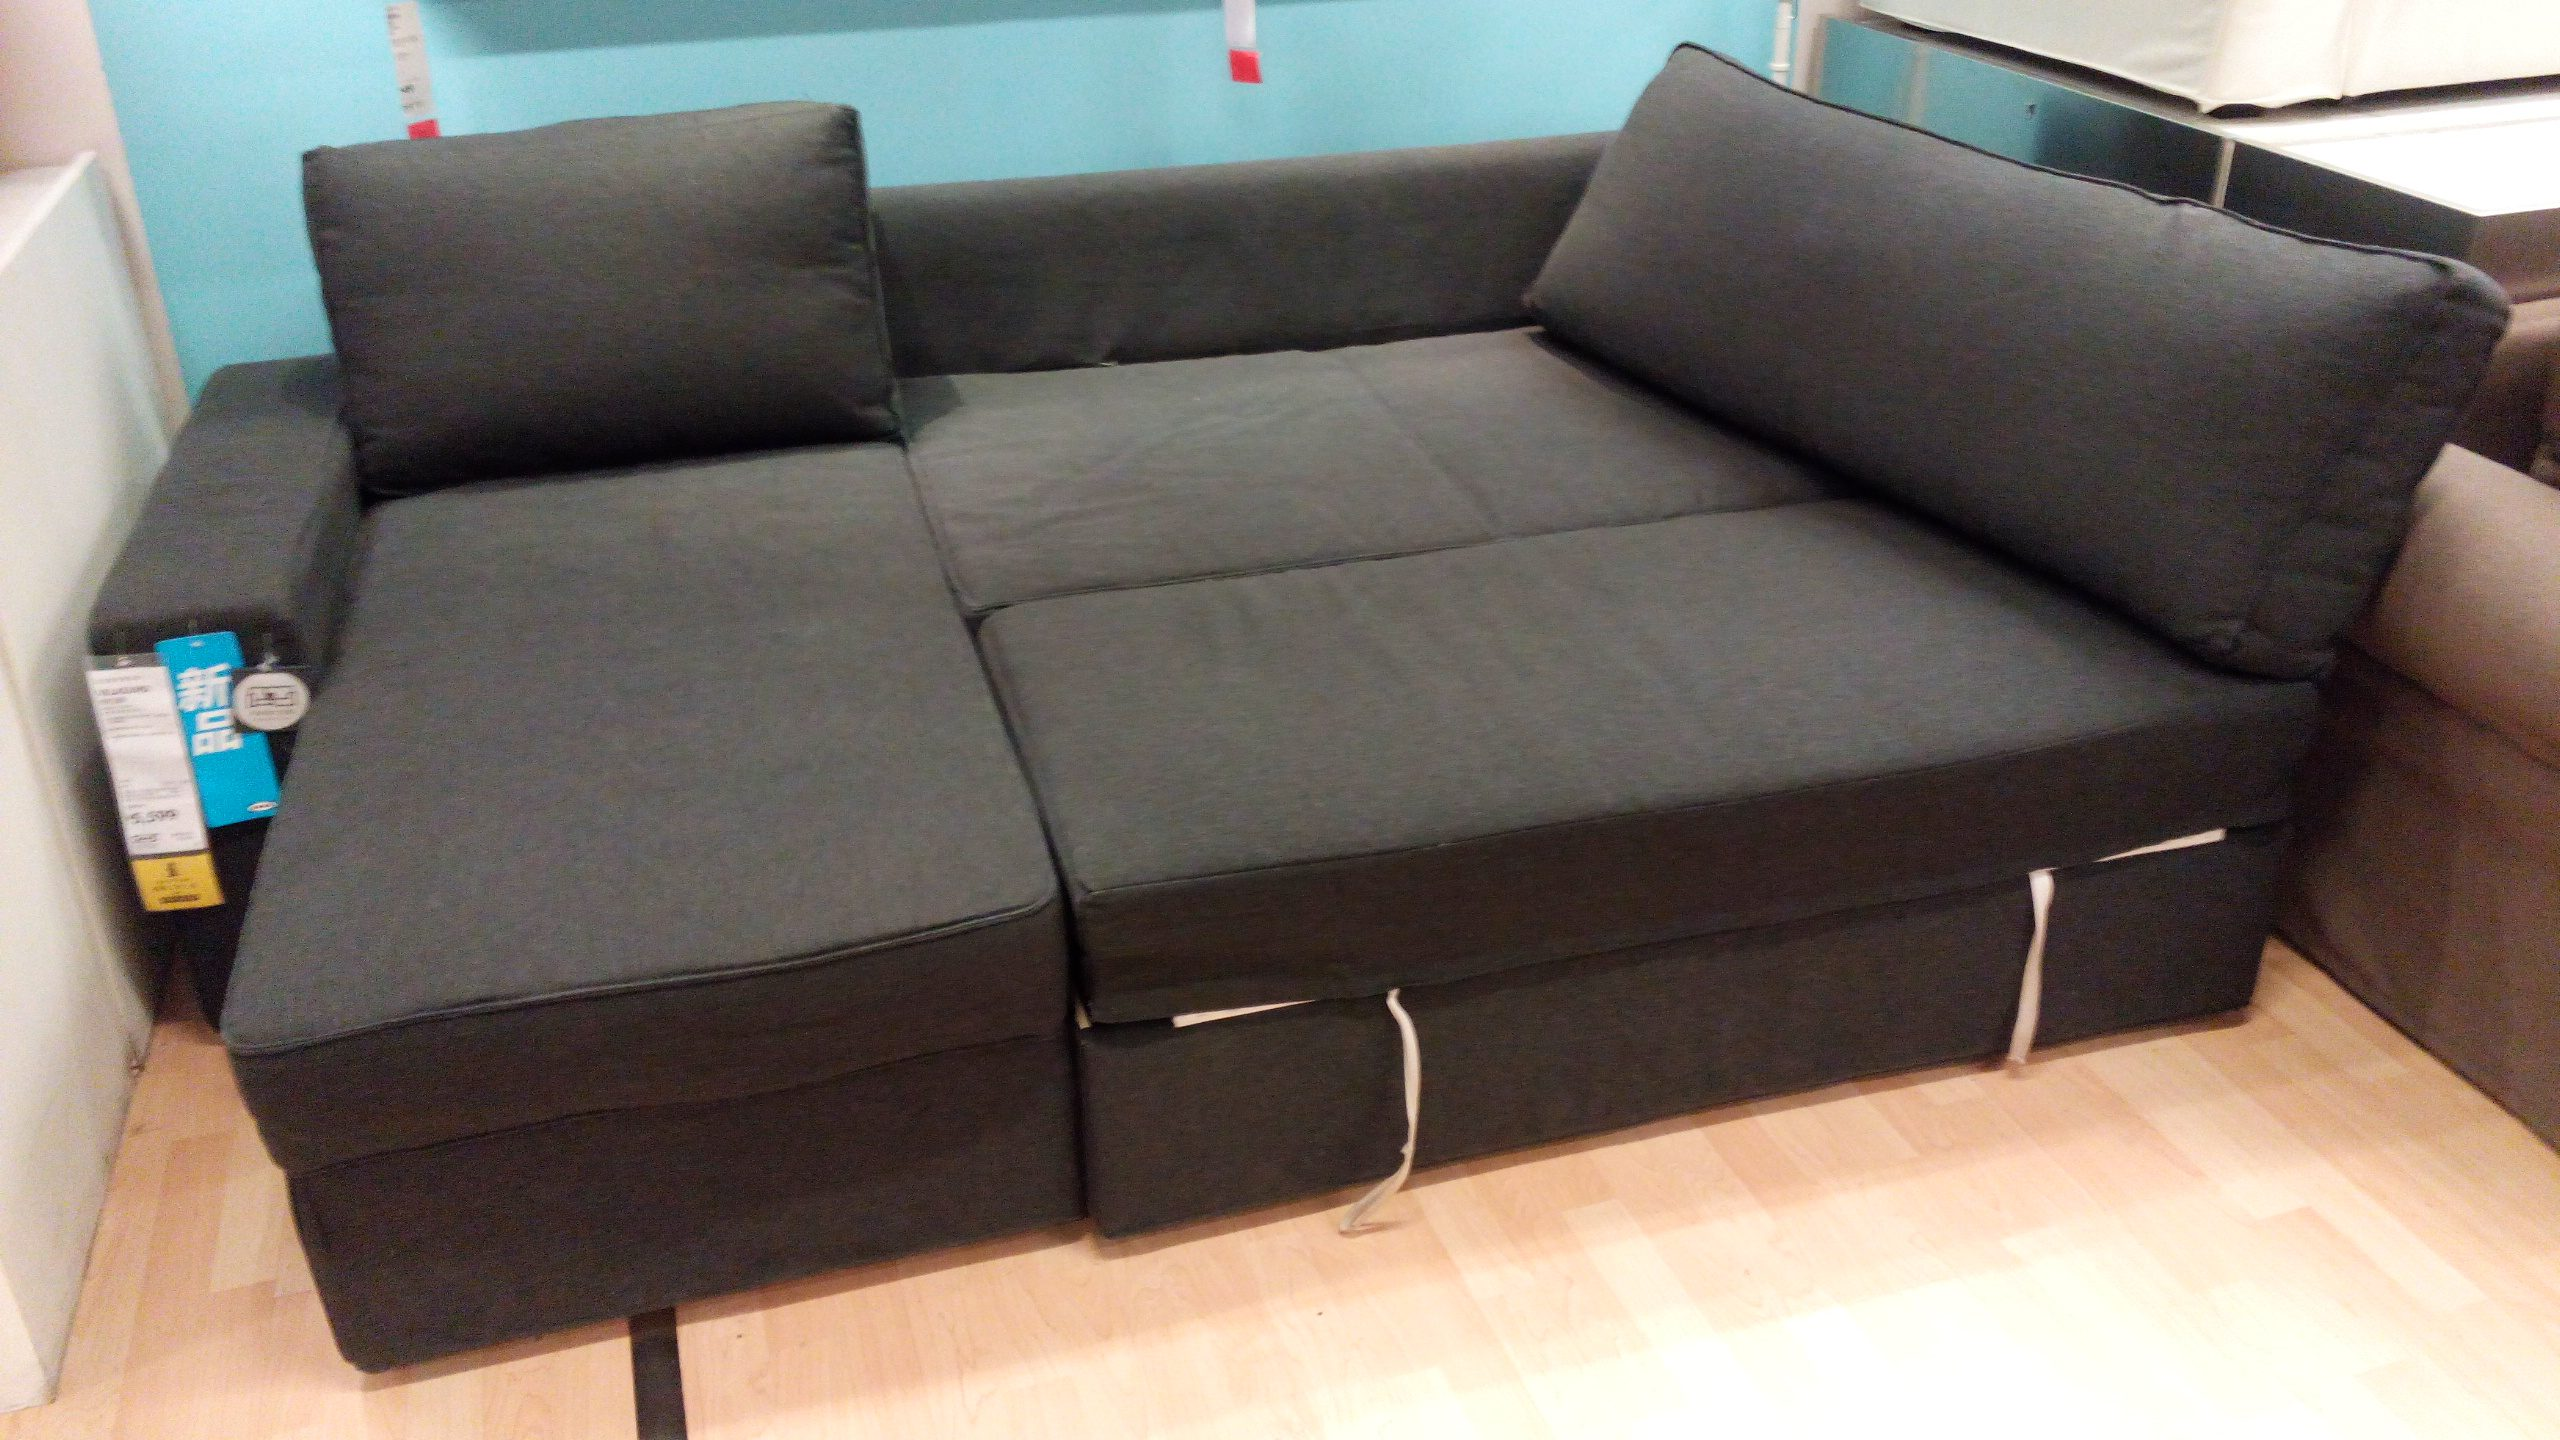 Ikea schlafcouch friheten  IKEA Vilasund and Backabro Review - Return of the Sofa Bed Clones!